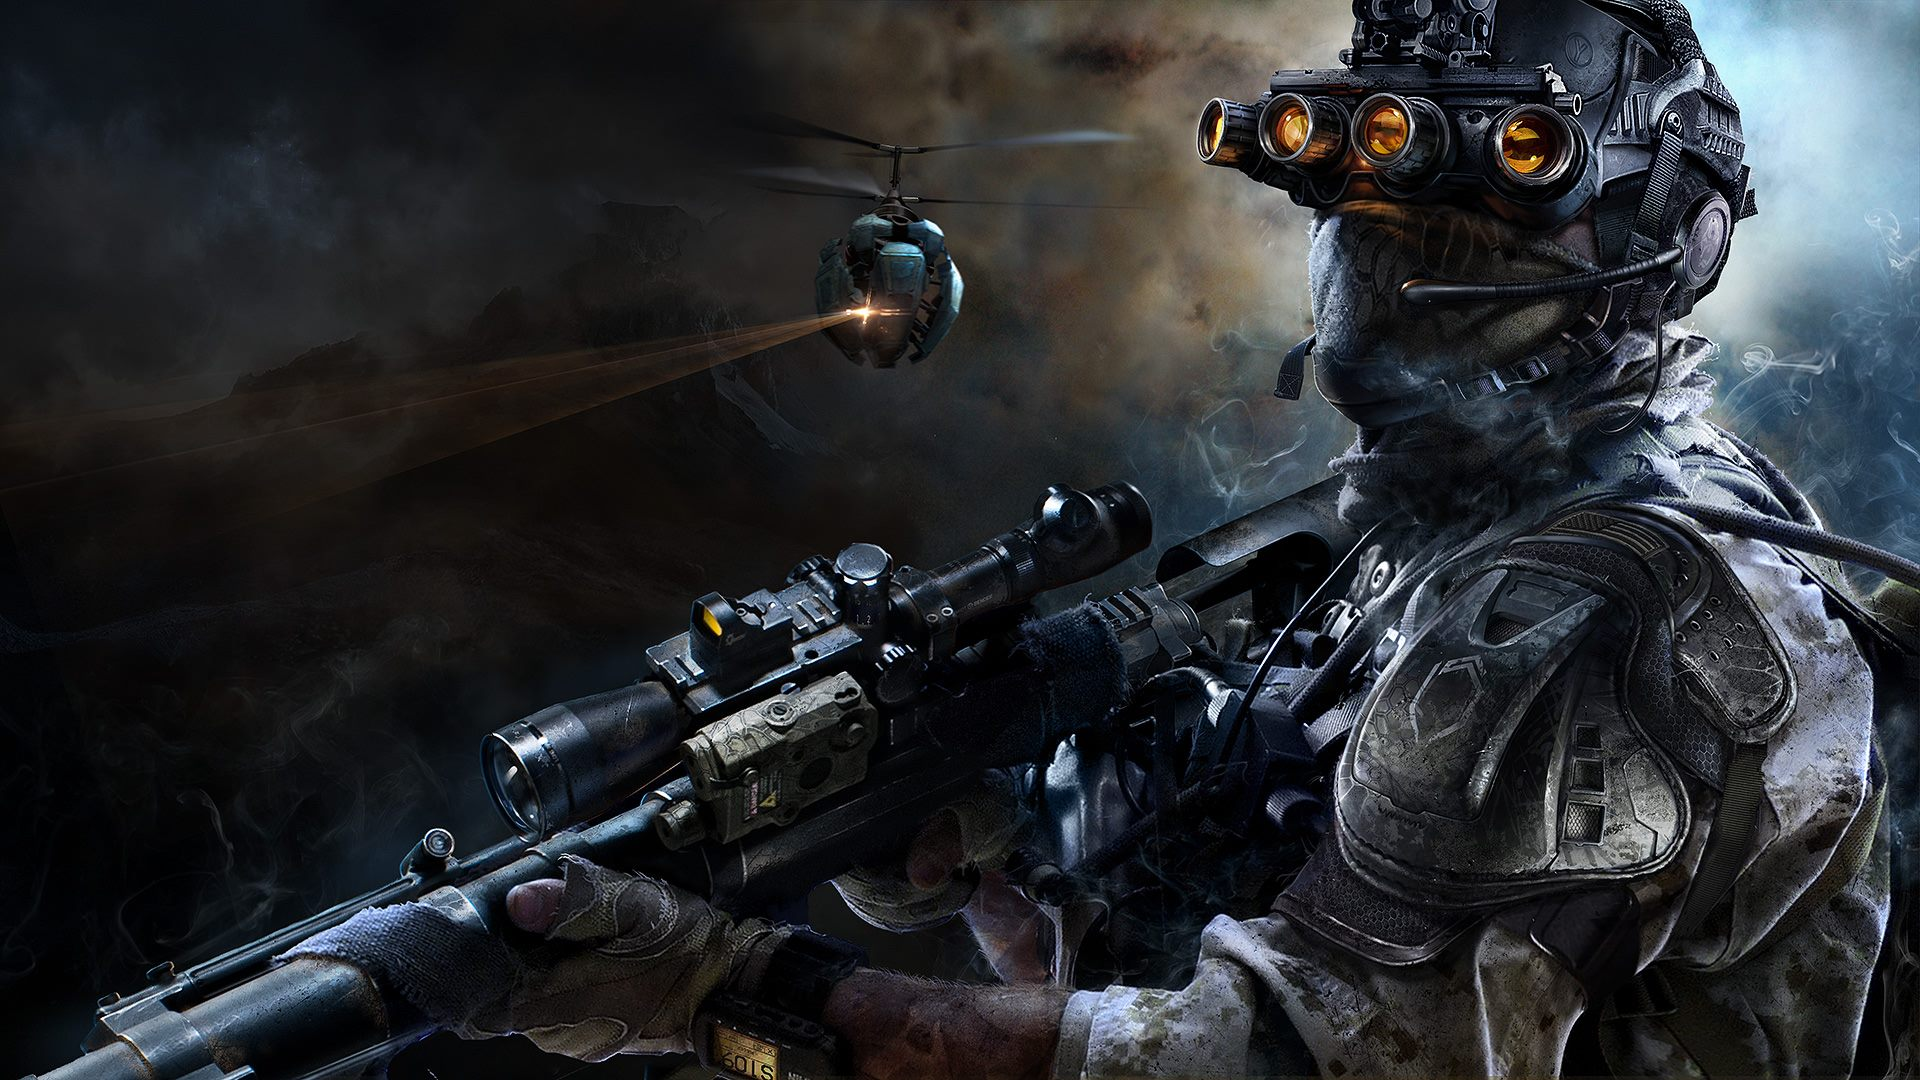 Sniper: Ghost Warrior 3 Delayed for Optimization and Polish